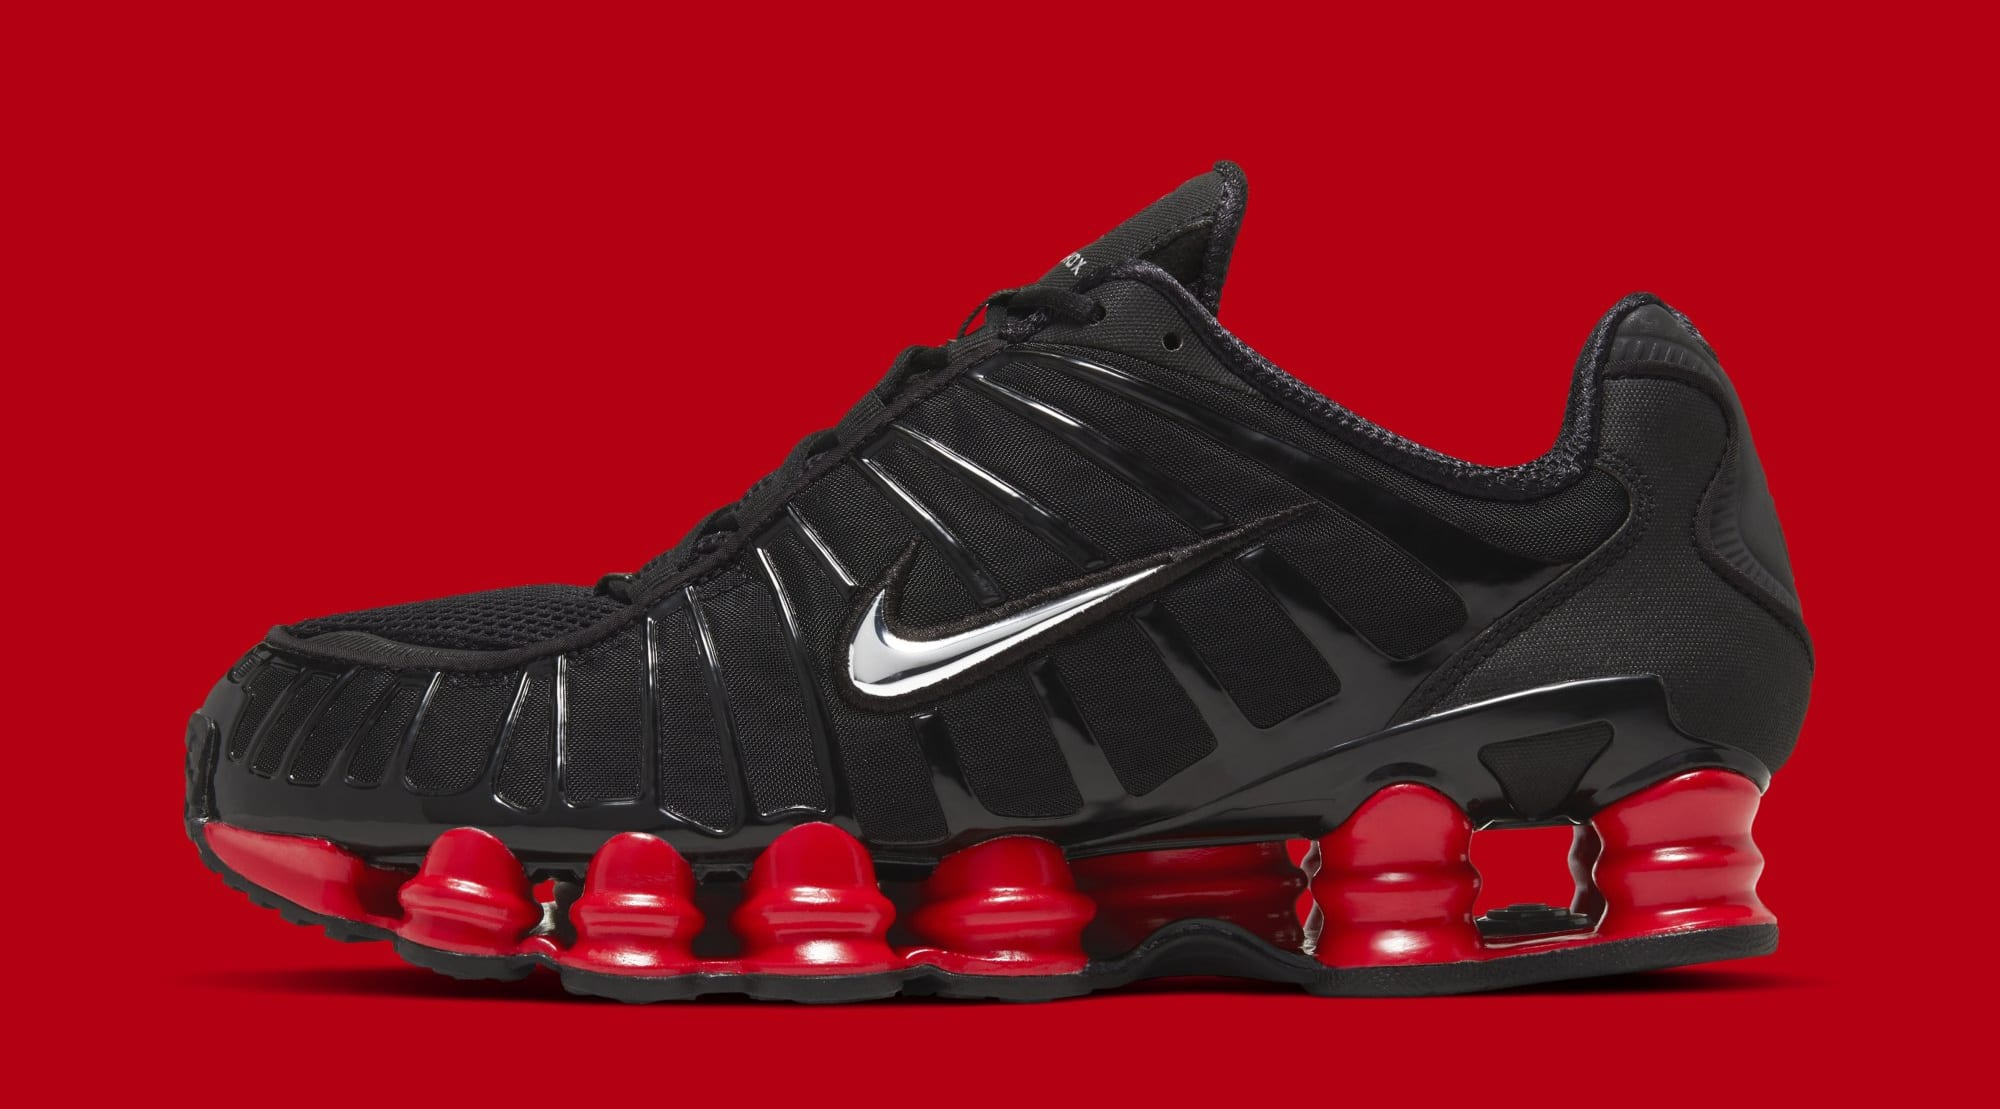 Skepta x Nike Shox TL 'Black/Black/University Red' CI0987-001 (Lateral)